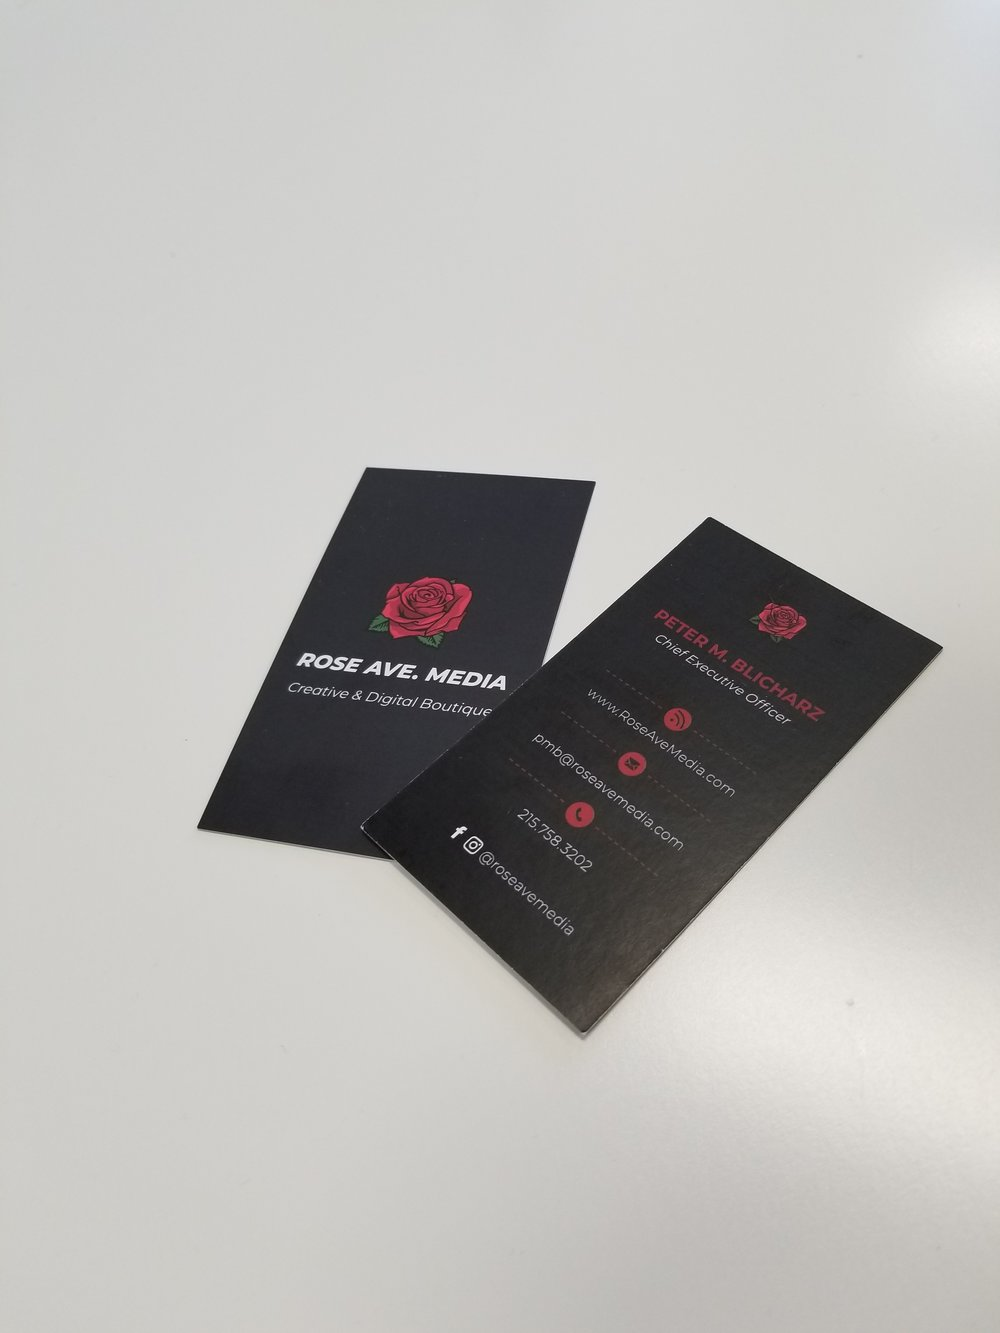 Business Cards - First impressions are everything! Don't get caught with a templated design card. Be unique with a custom high quality business card from TwoTwo Creative!Featured Client: Rose Ave Media